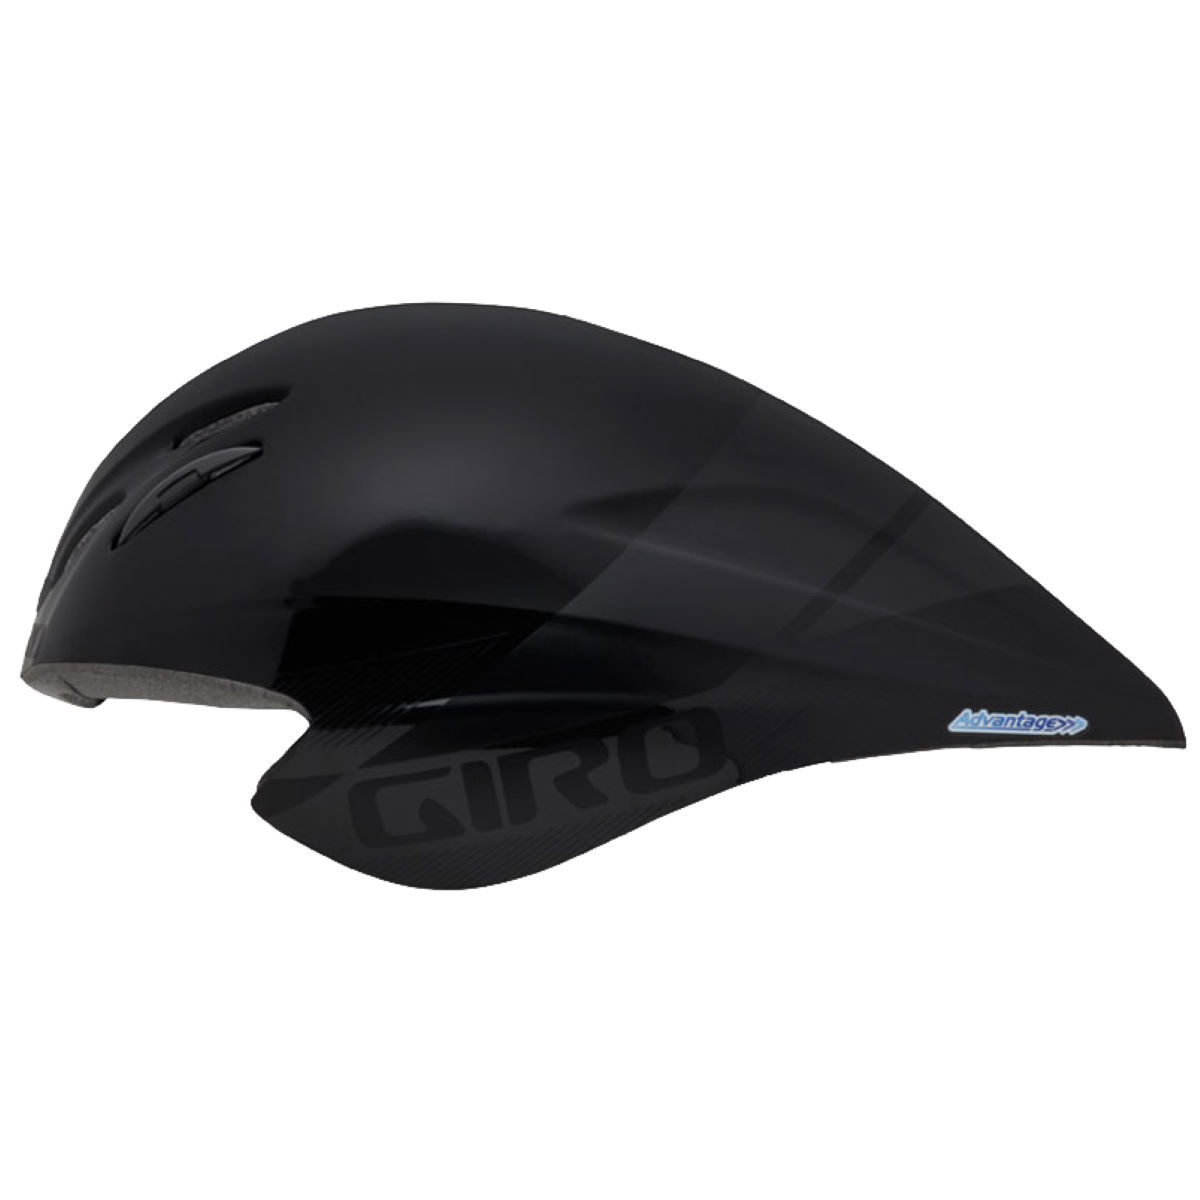 Casque de contre-la-montre Giro Advantage 2 - Small 51-55cm Noir/Noir Casques de route